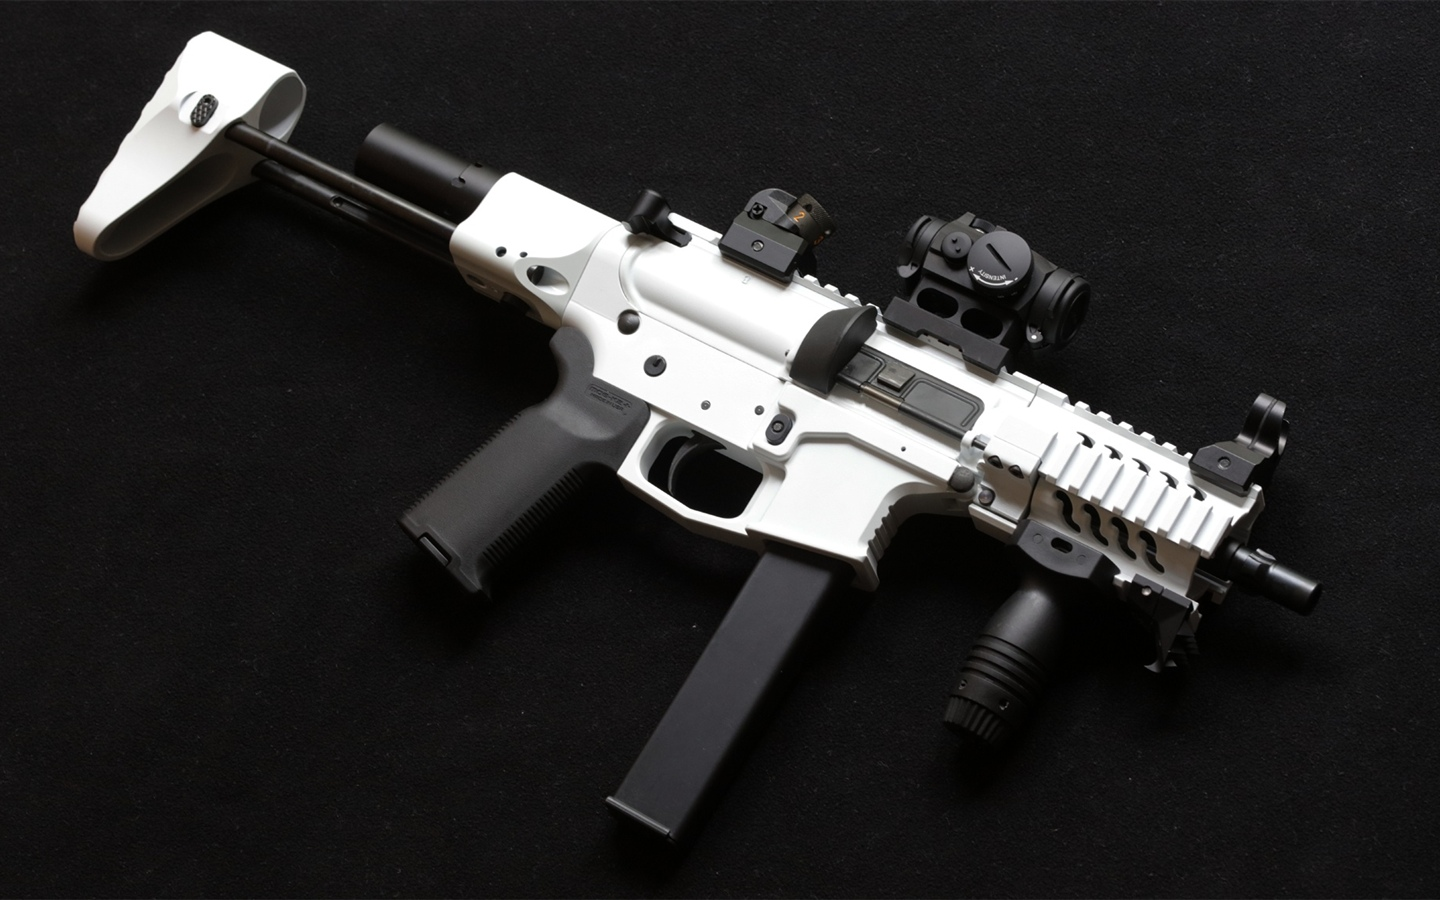 AR-15 style rifle, weapon 1440x900 wallpaper